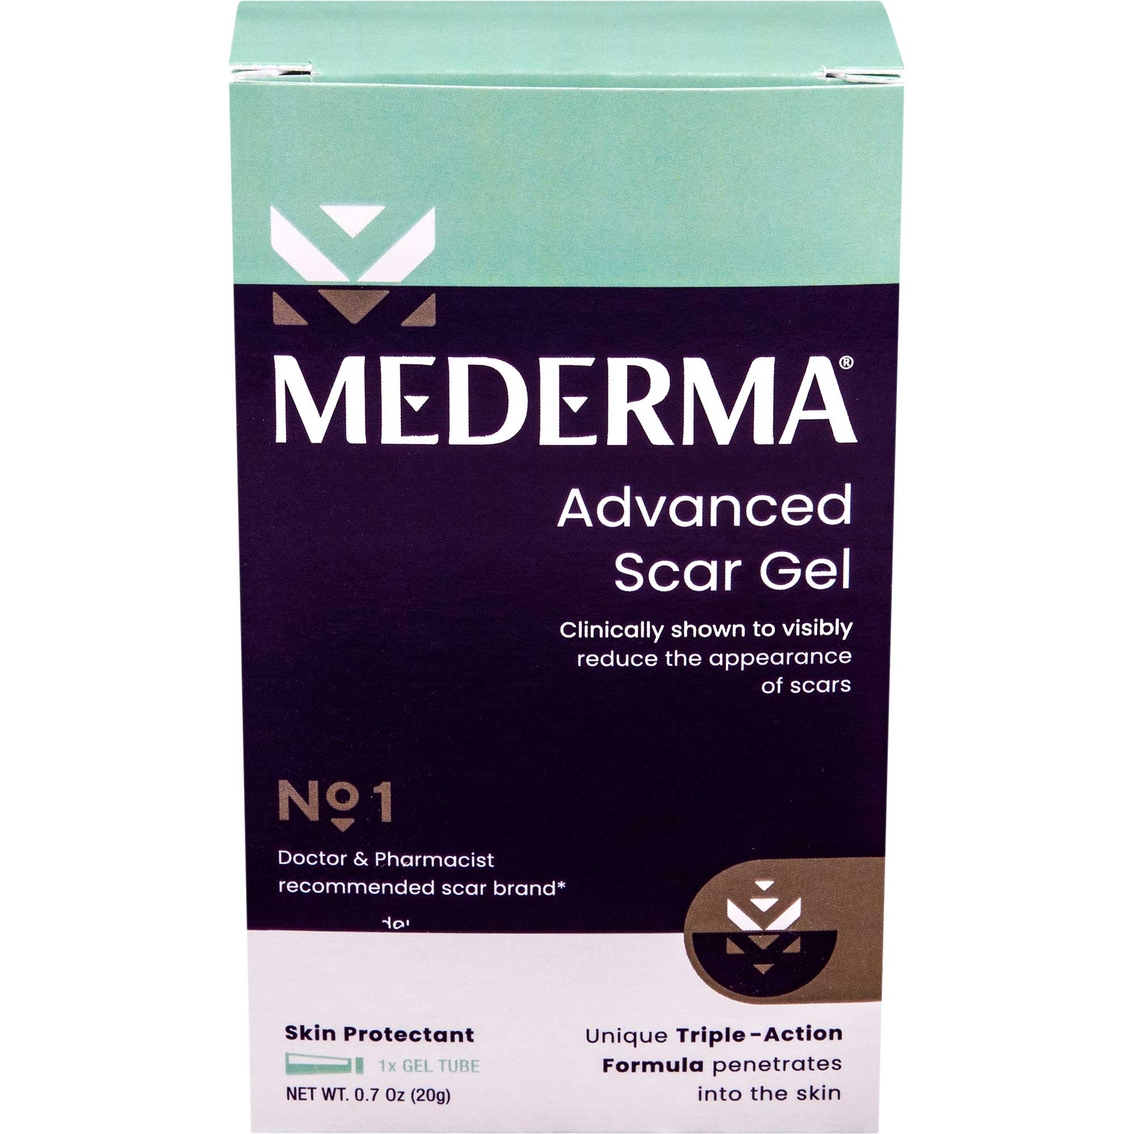 Mederma reviews for old scars